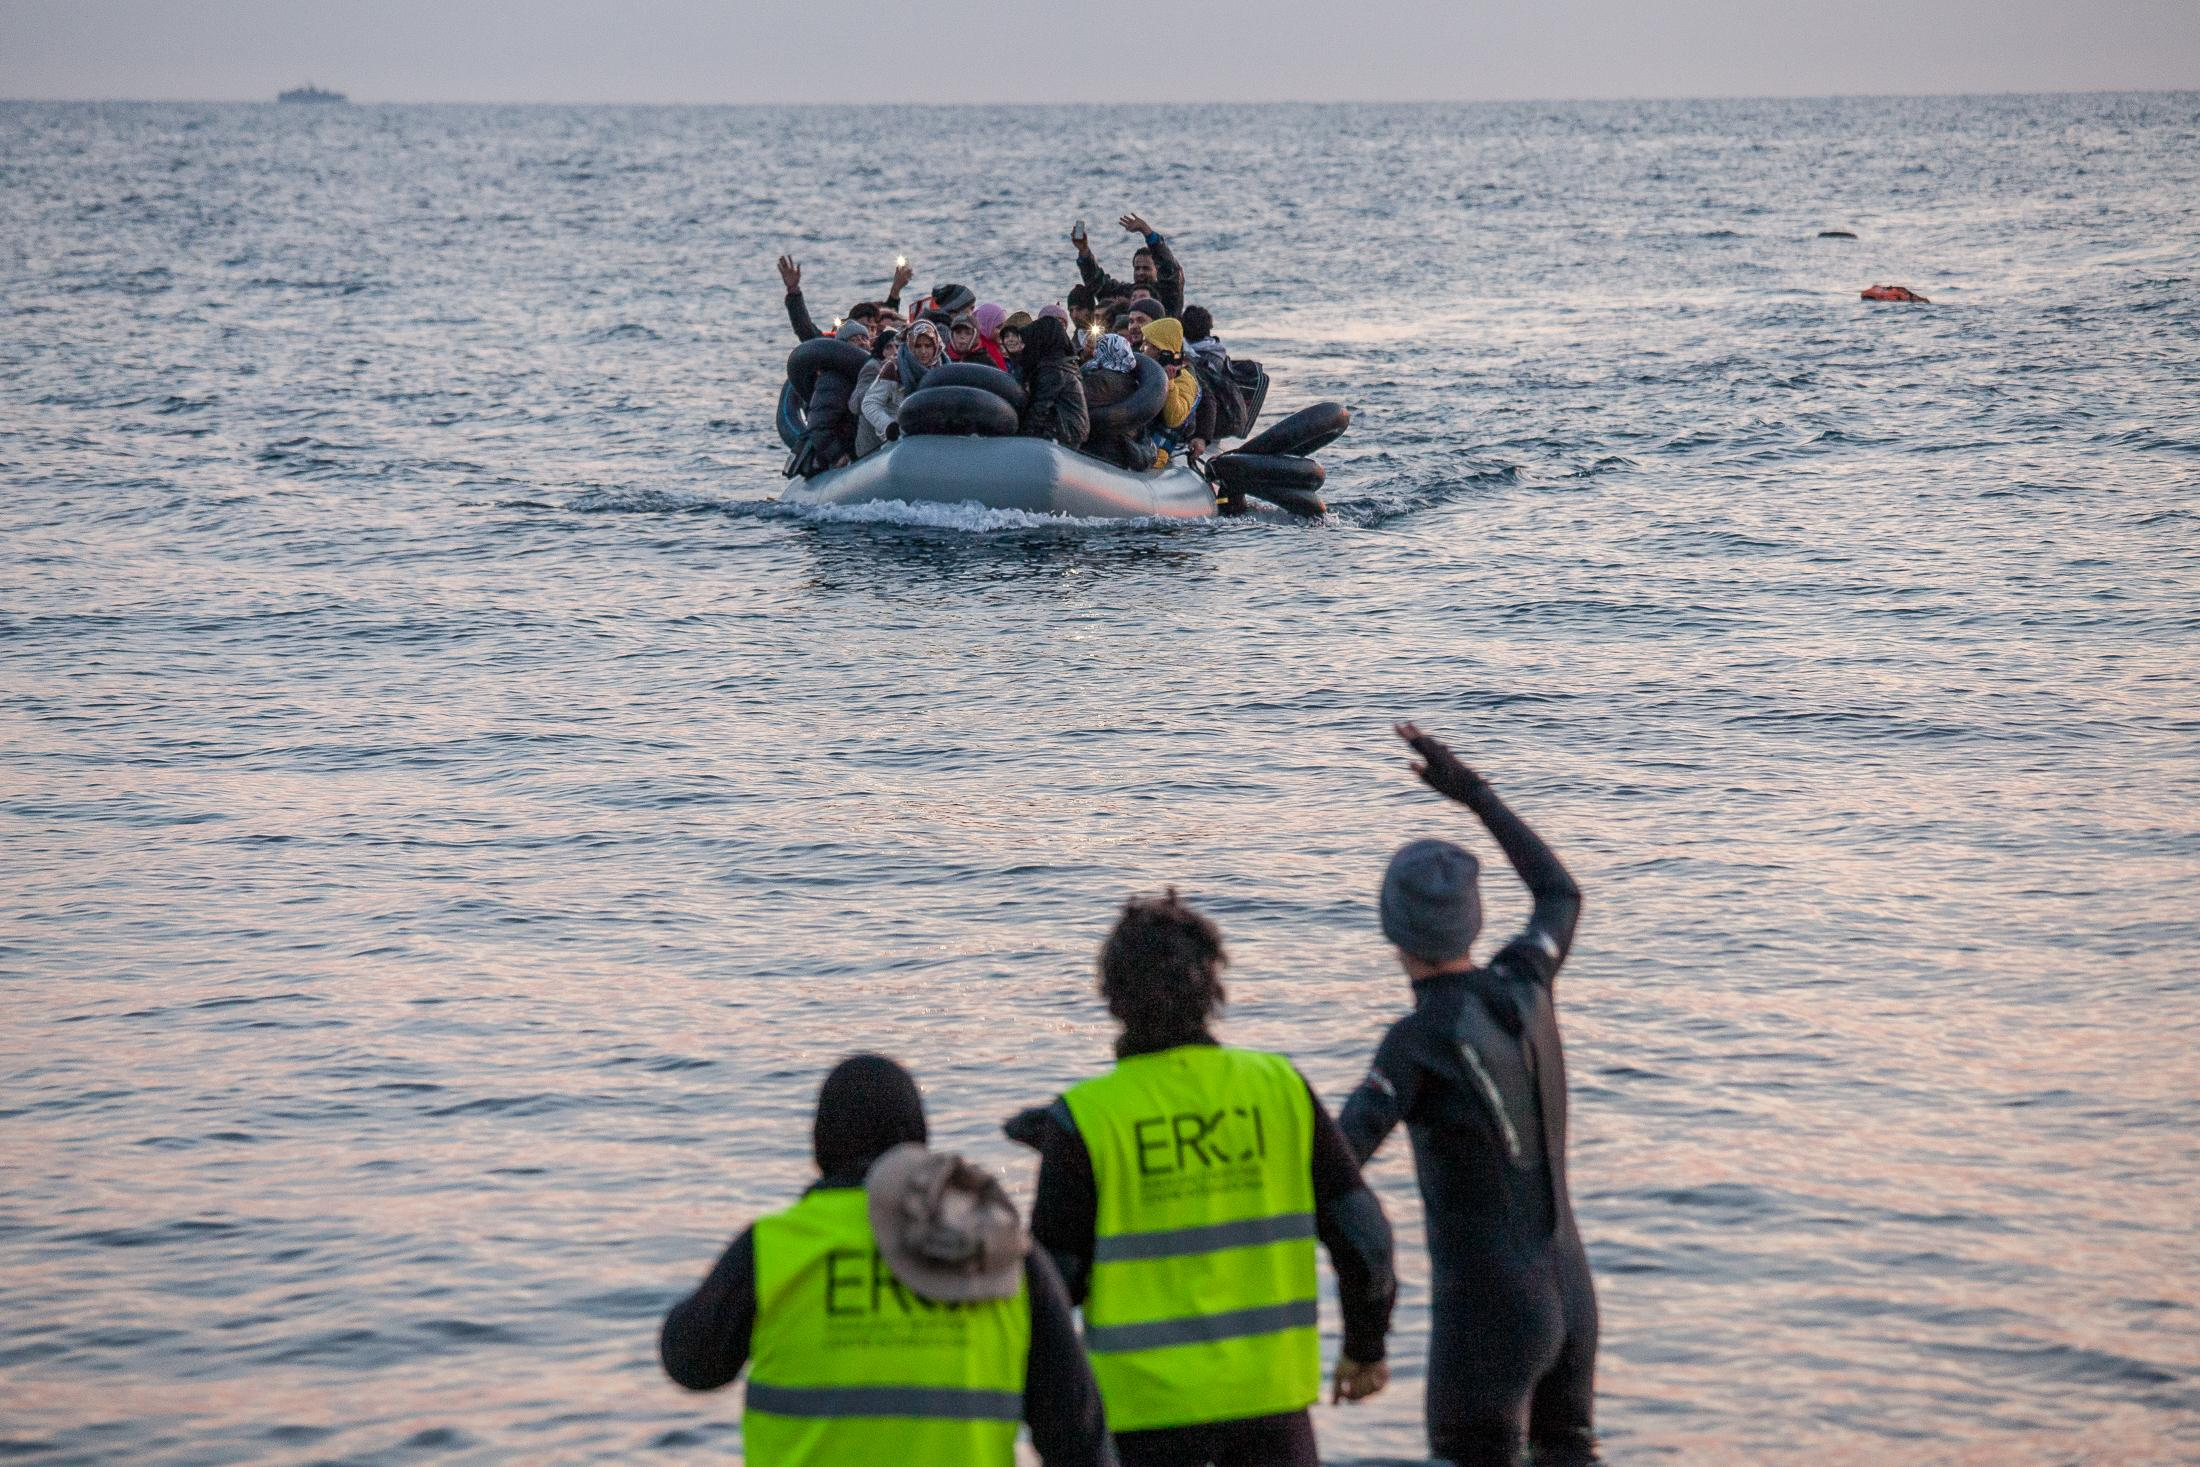 MYTILINI, GREECE - FEBRUARY 09: Volunteers guide refugees to a safe zone arriving at Katia beach in a dinghy during the early morning on February 09, 2015 in Mytilini, Greece. Dozens of volunteers watch day and night on the beaches of Lesvos for the arrival of refugees. Volunteers are the firsts to help refugees that are not rescued by coastguards that watch the Aegean sea. Teams of doctors from different countries work together with international rescue teams in providing assistance to the hundreds of refugees arriving at the beaches of Lesvos, guiding dinghies to safe arrival areas, providing hot drinks and food, shoes, clothes and medical assistance to those arriving sick. Hypothermia is a common symptom on the refugees arriving at Lesvos after crossing the Aegean sea for more than 2 hours from the Turkish coast, from where they are smuggled into Europe. Photo: © Omar Havana for Action Aid Greece